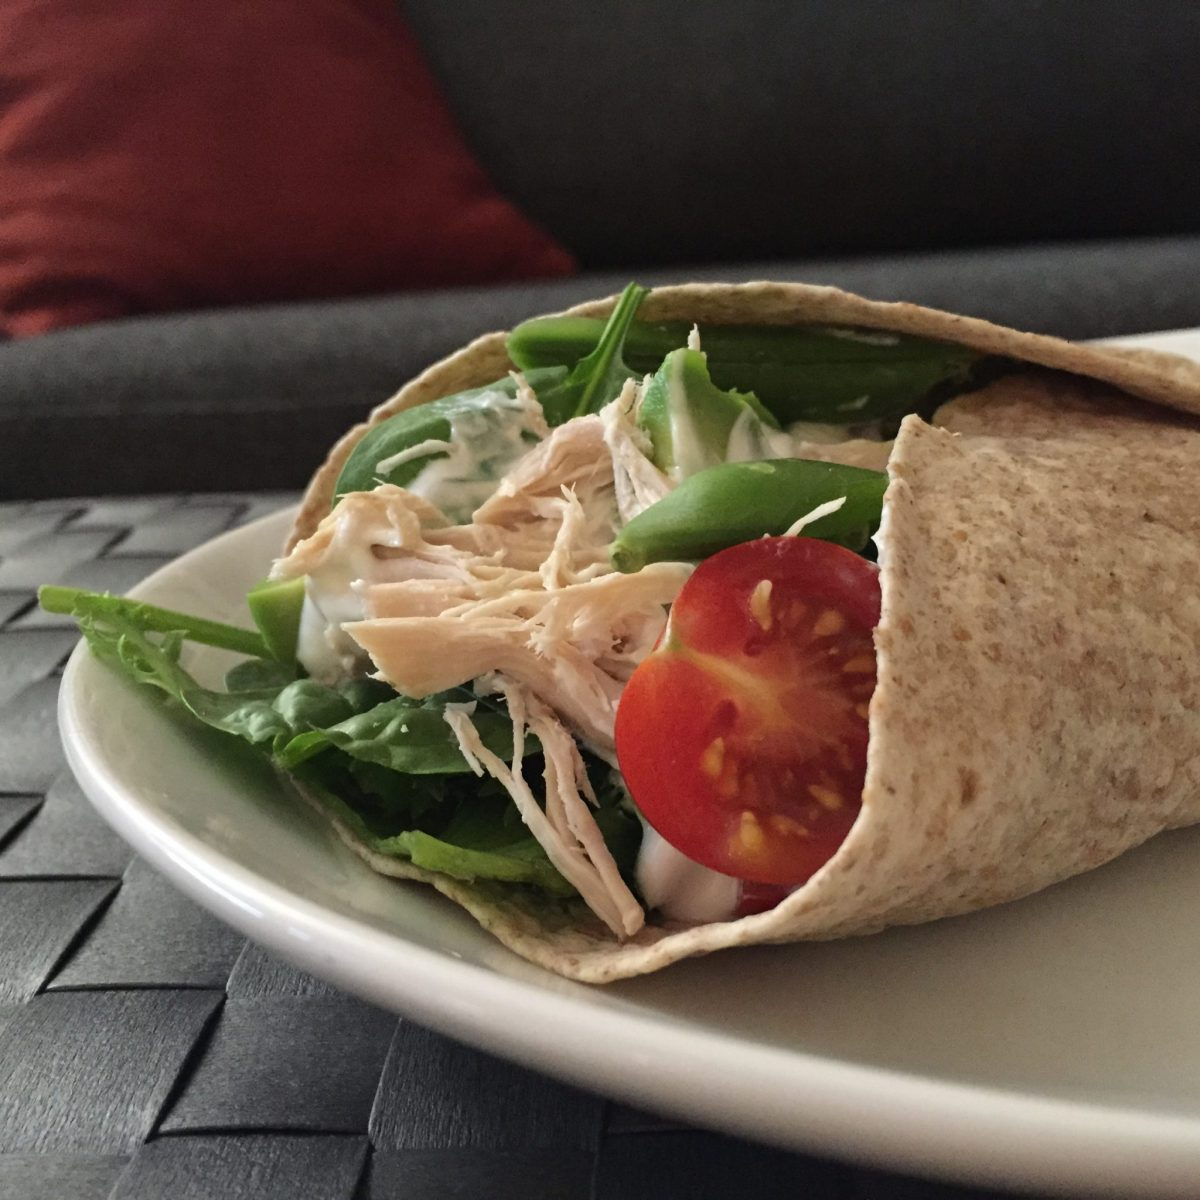 Pulled chicken i wrap